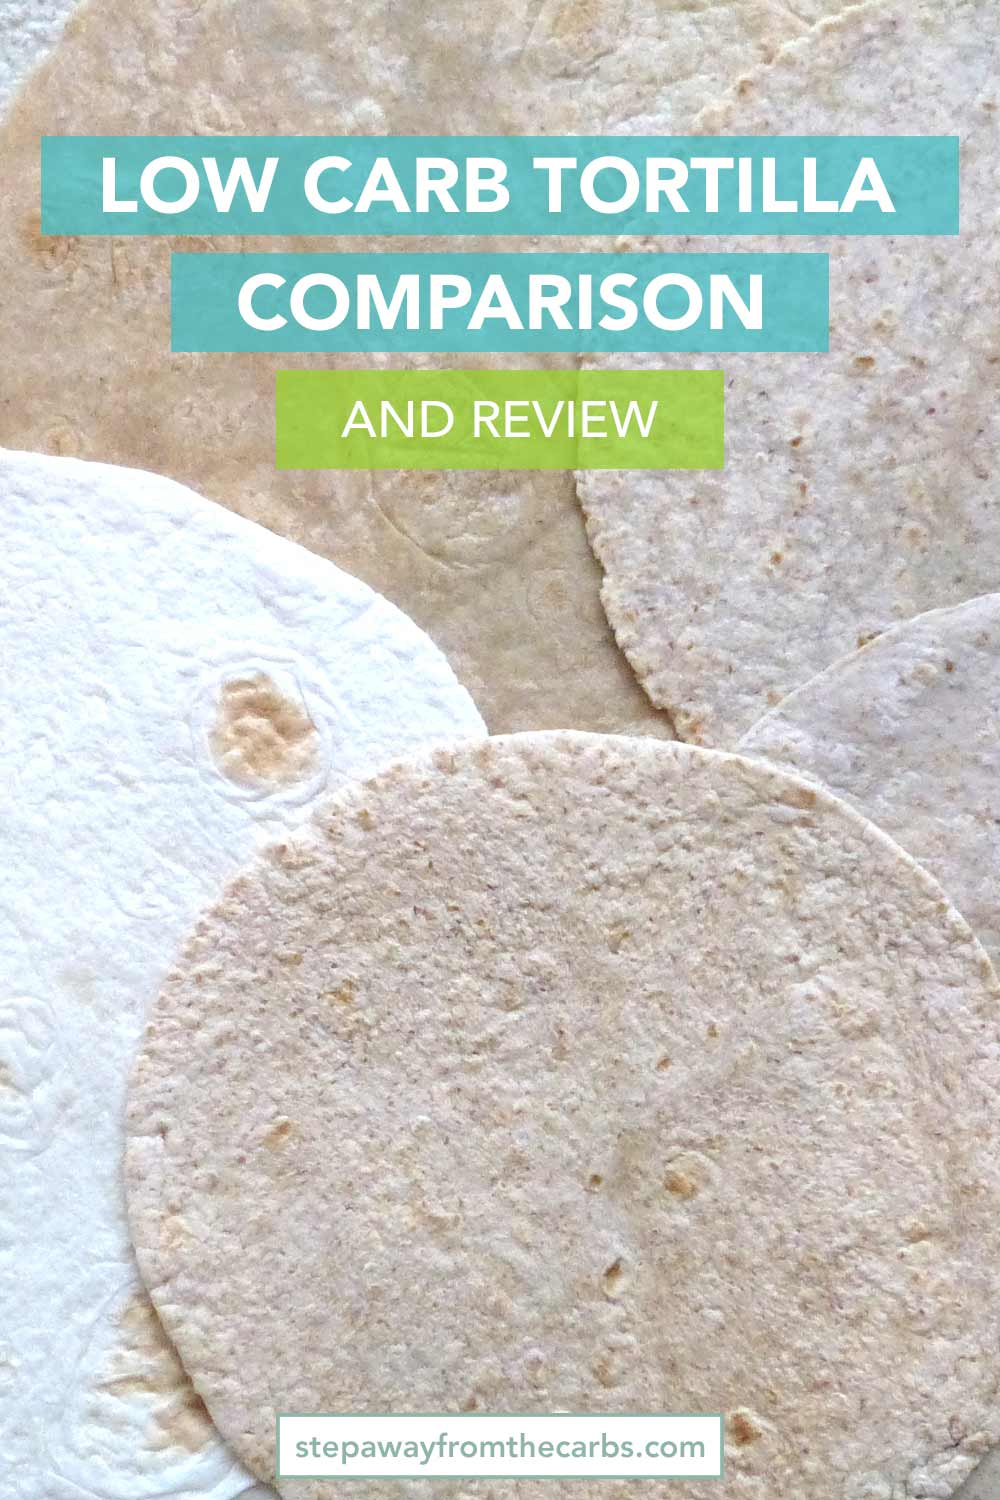 Low Carb Tortilla Comparison and Review - including carb counts and where to buy!